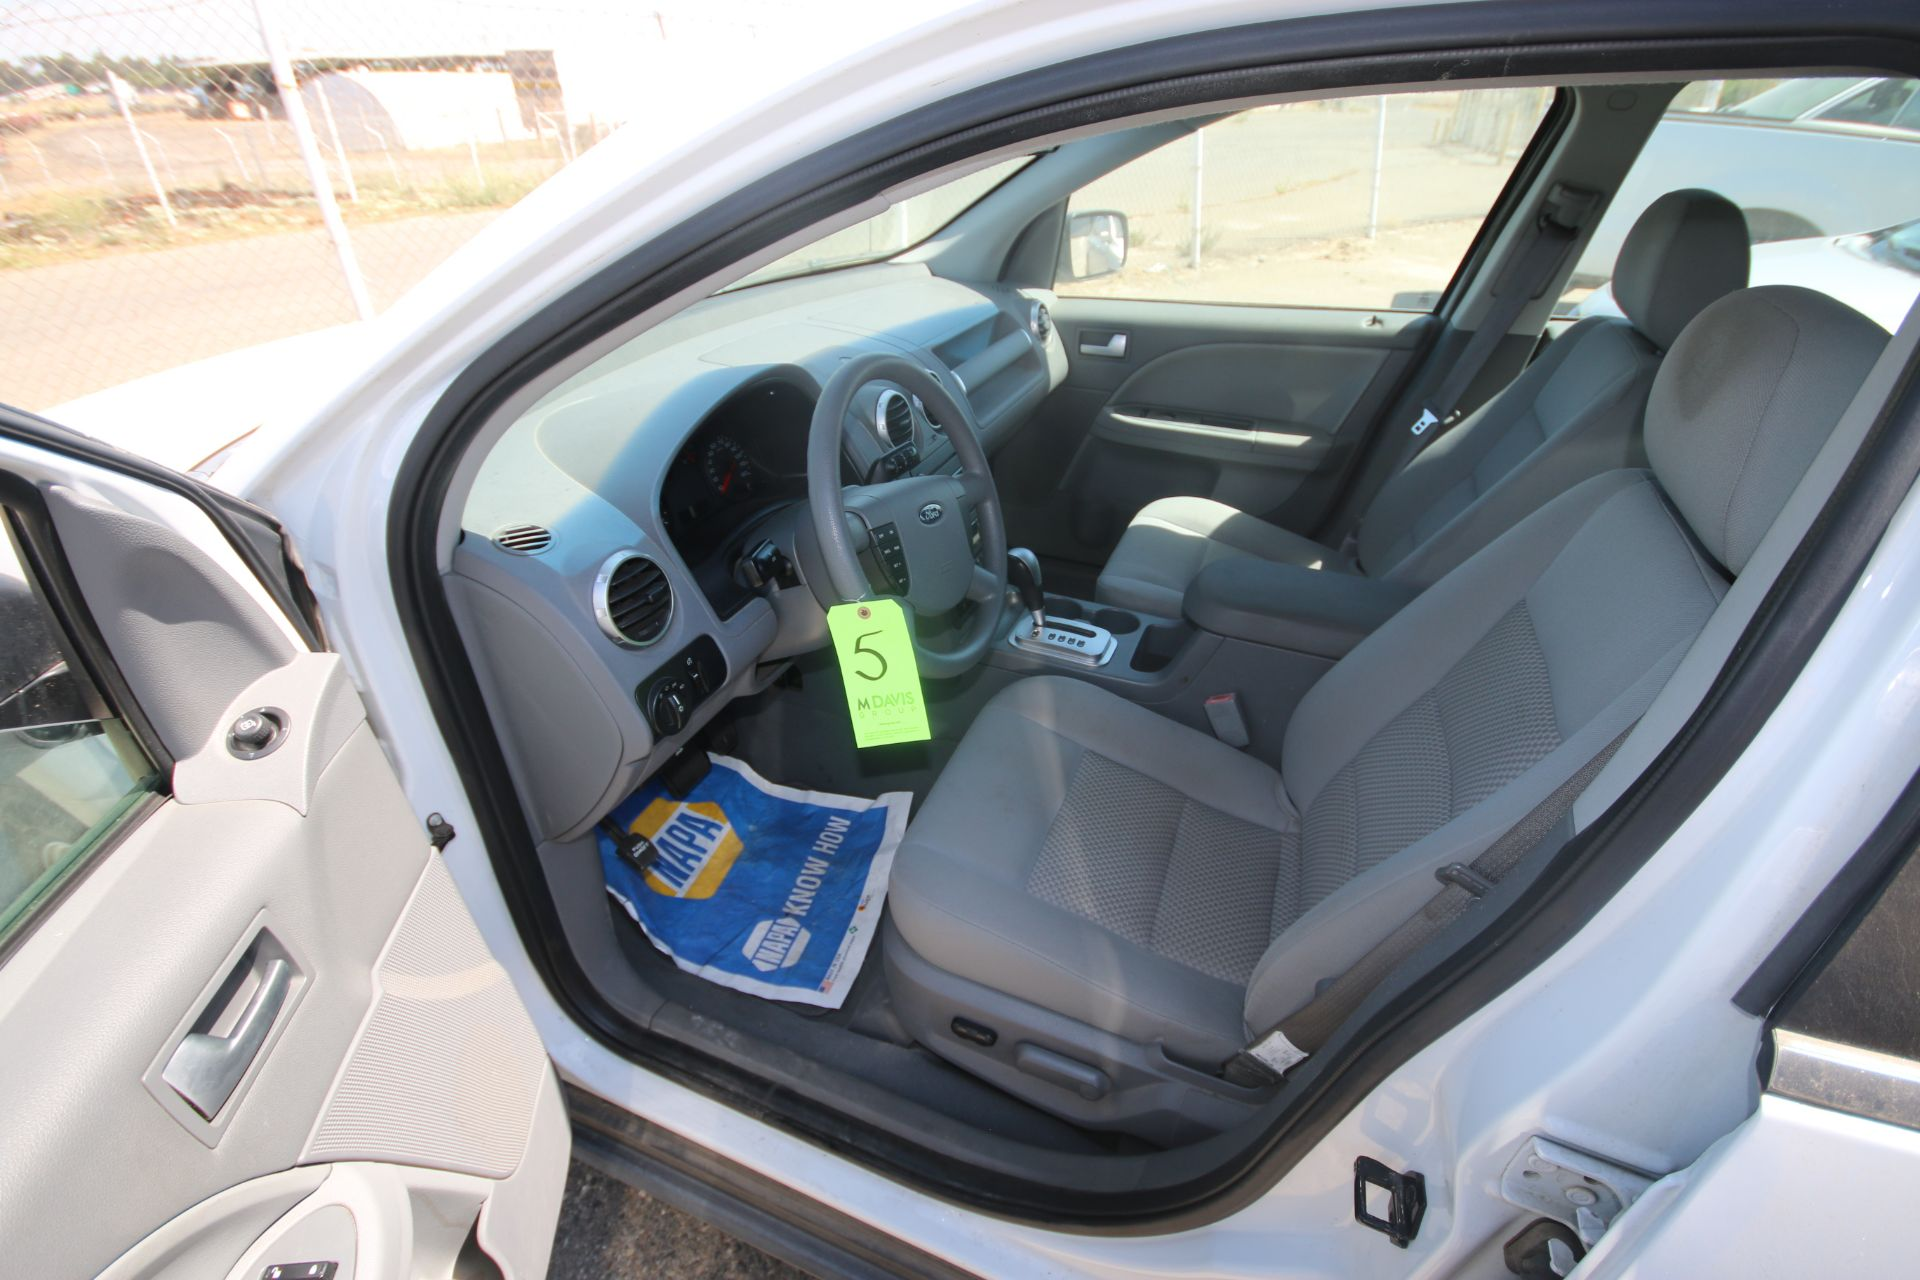 2006 Ford Freestyle, VIN #: 1FMDKO11X6GA41766, with 108,982 Miles, License Plate #: 5NGZ608, Started - Image 16 of 22